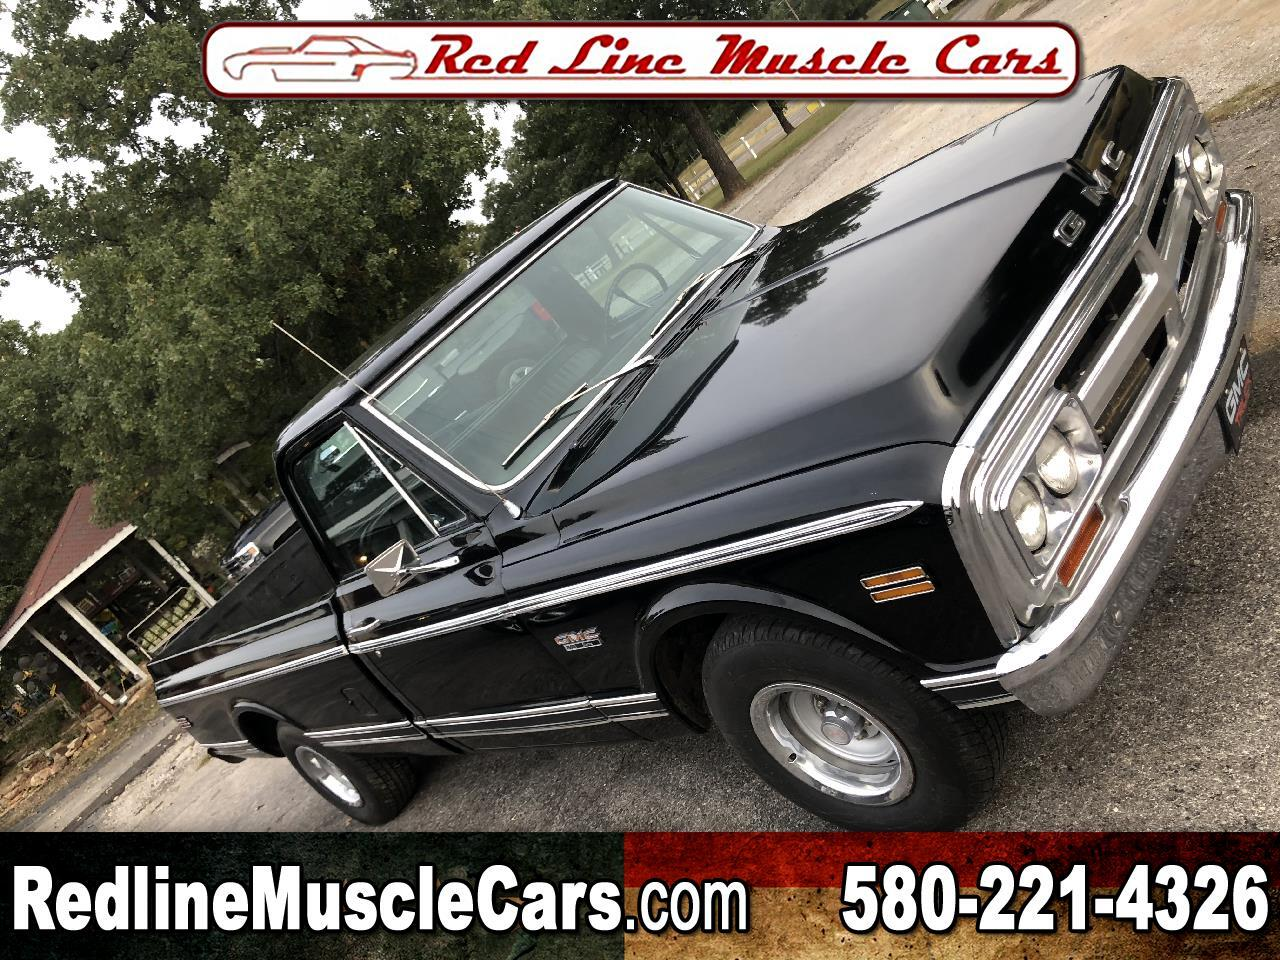 1972 GMC Sierra 1500 Classic SL Long Box 2WD